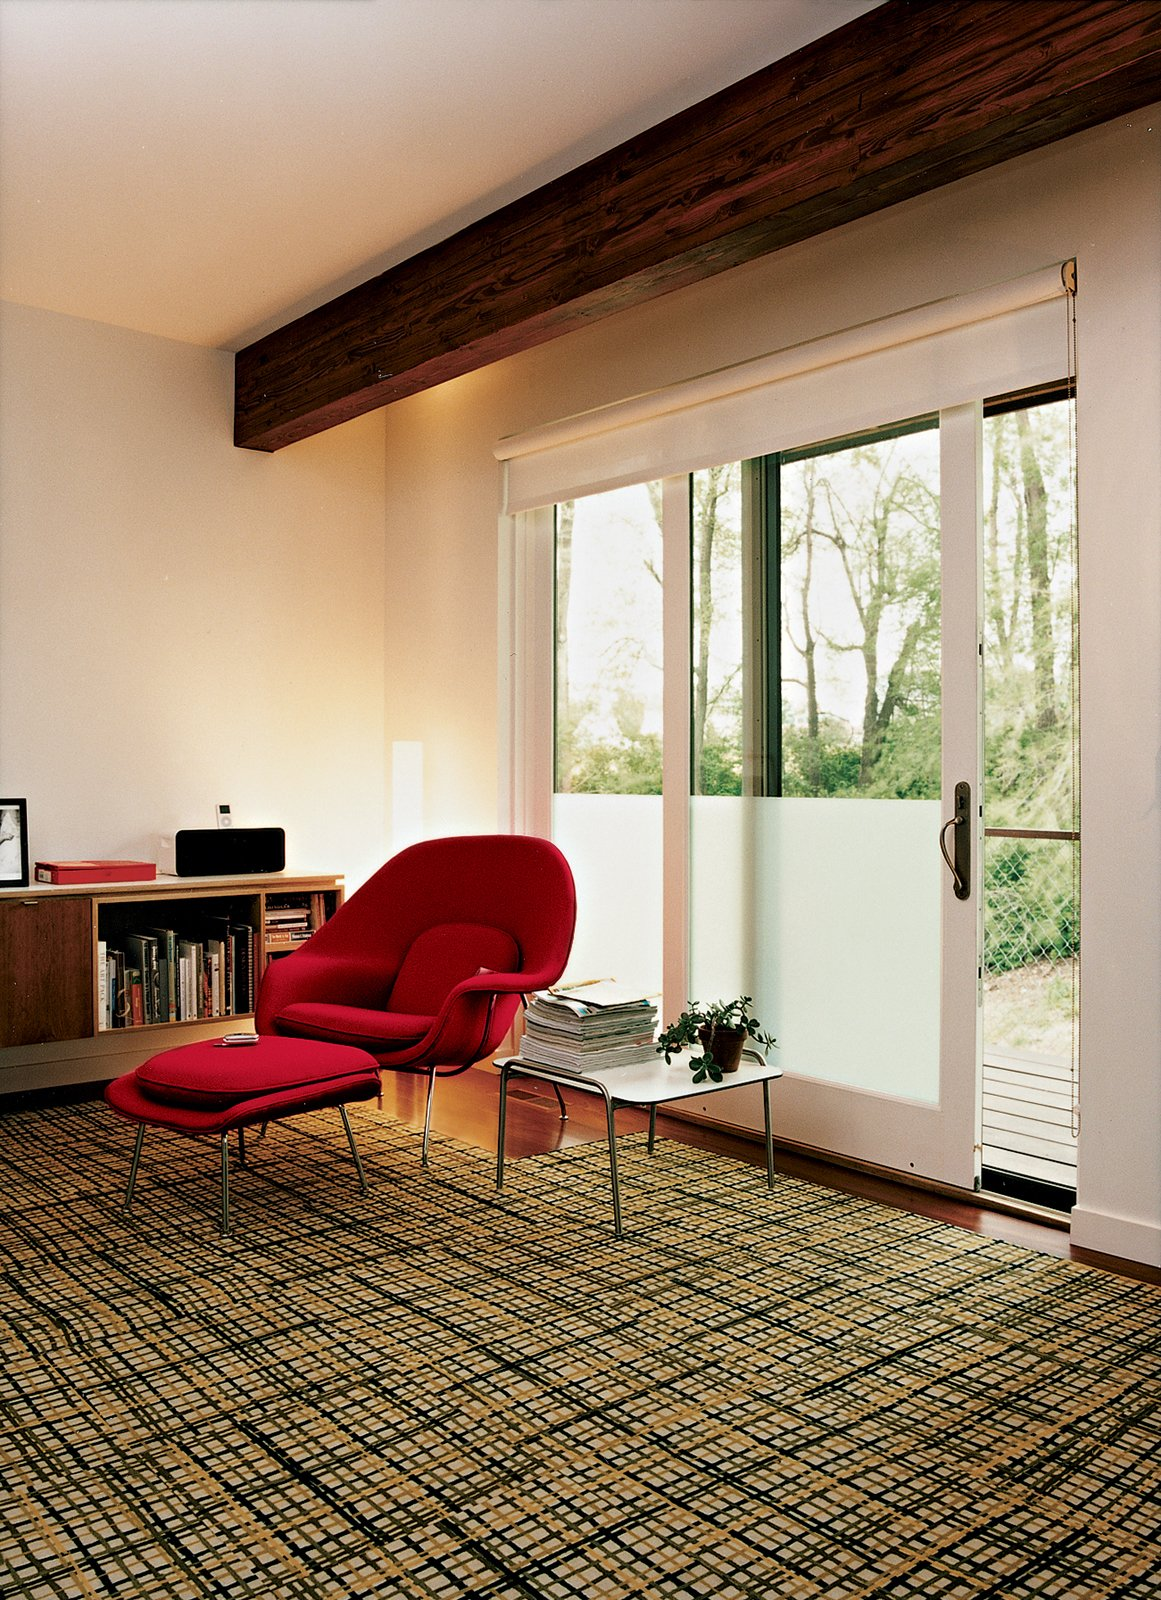 Living Room and Chair An Eero Saarinen Womb chair sits in the master bedroom, which also has a small office space.  Photo 5 of 10 in Design Classic: Eero Saarinen's Womb Chair from Affordable, SIP-Built Family Home in Kansas City